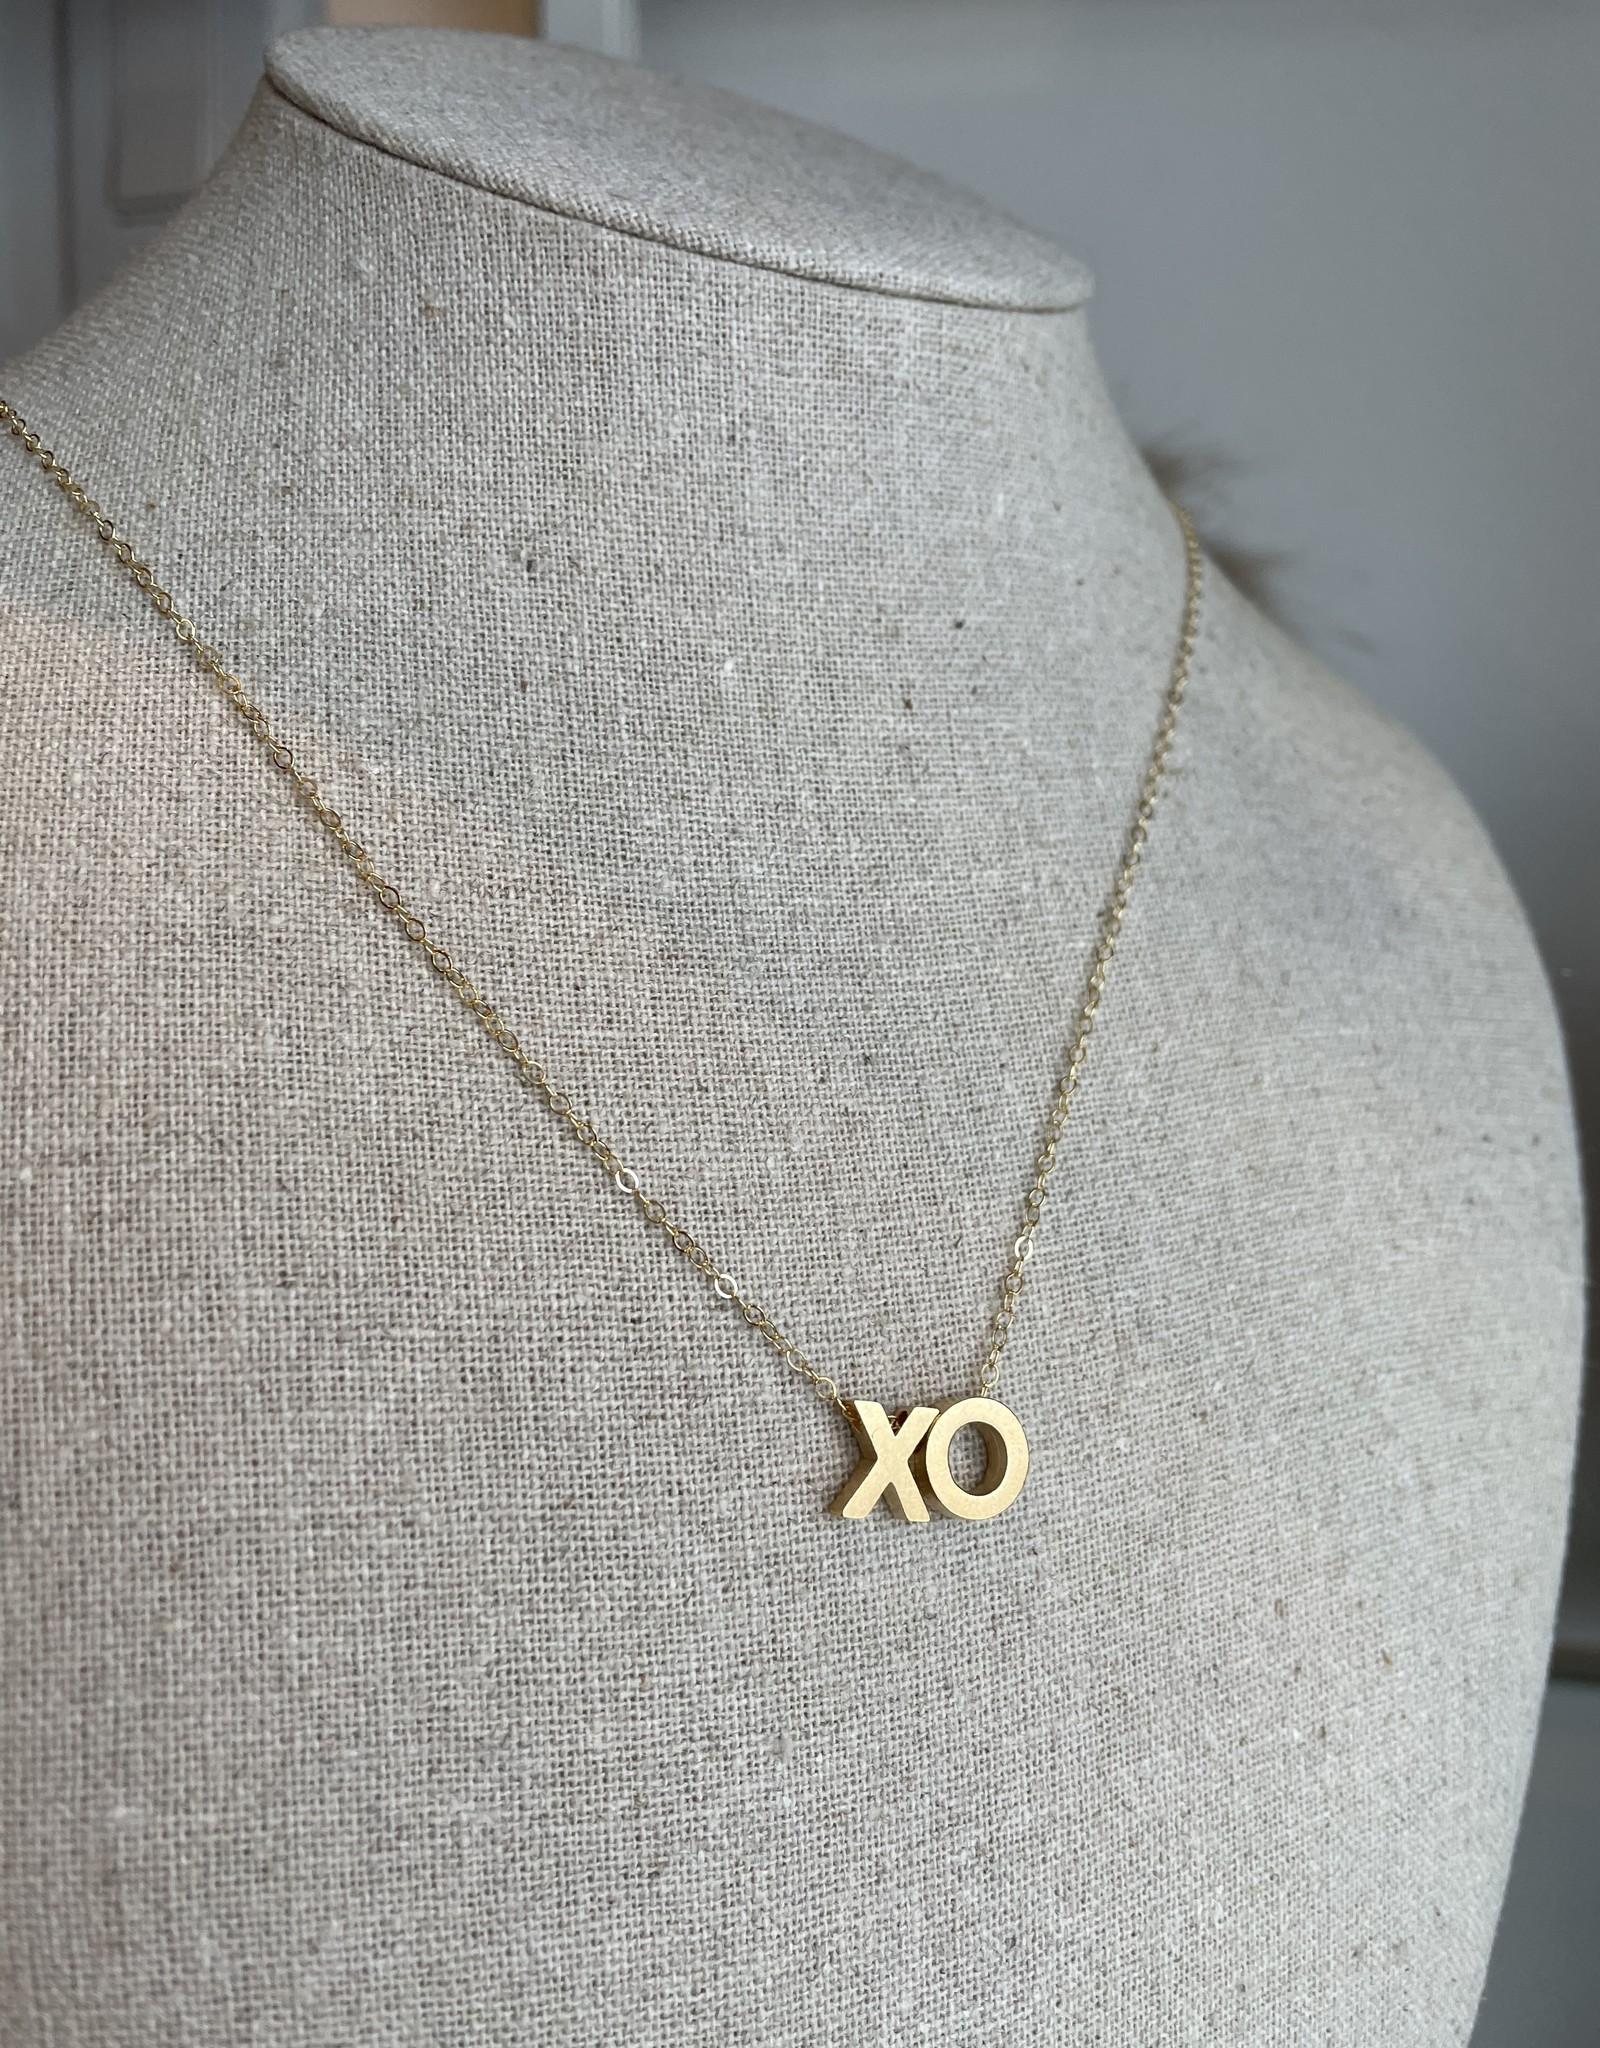 Able XO Letter Charm Necklace